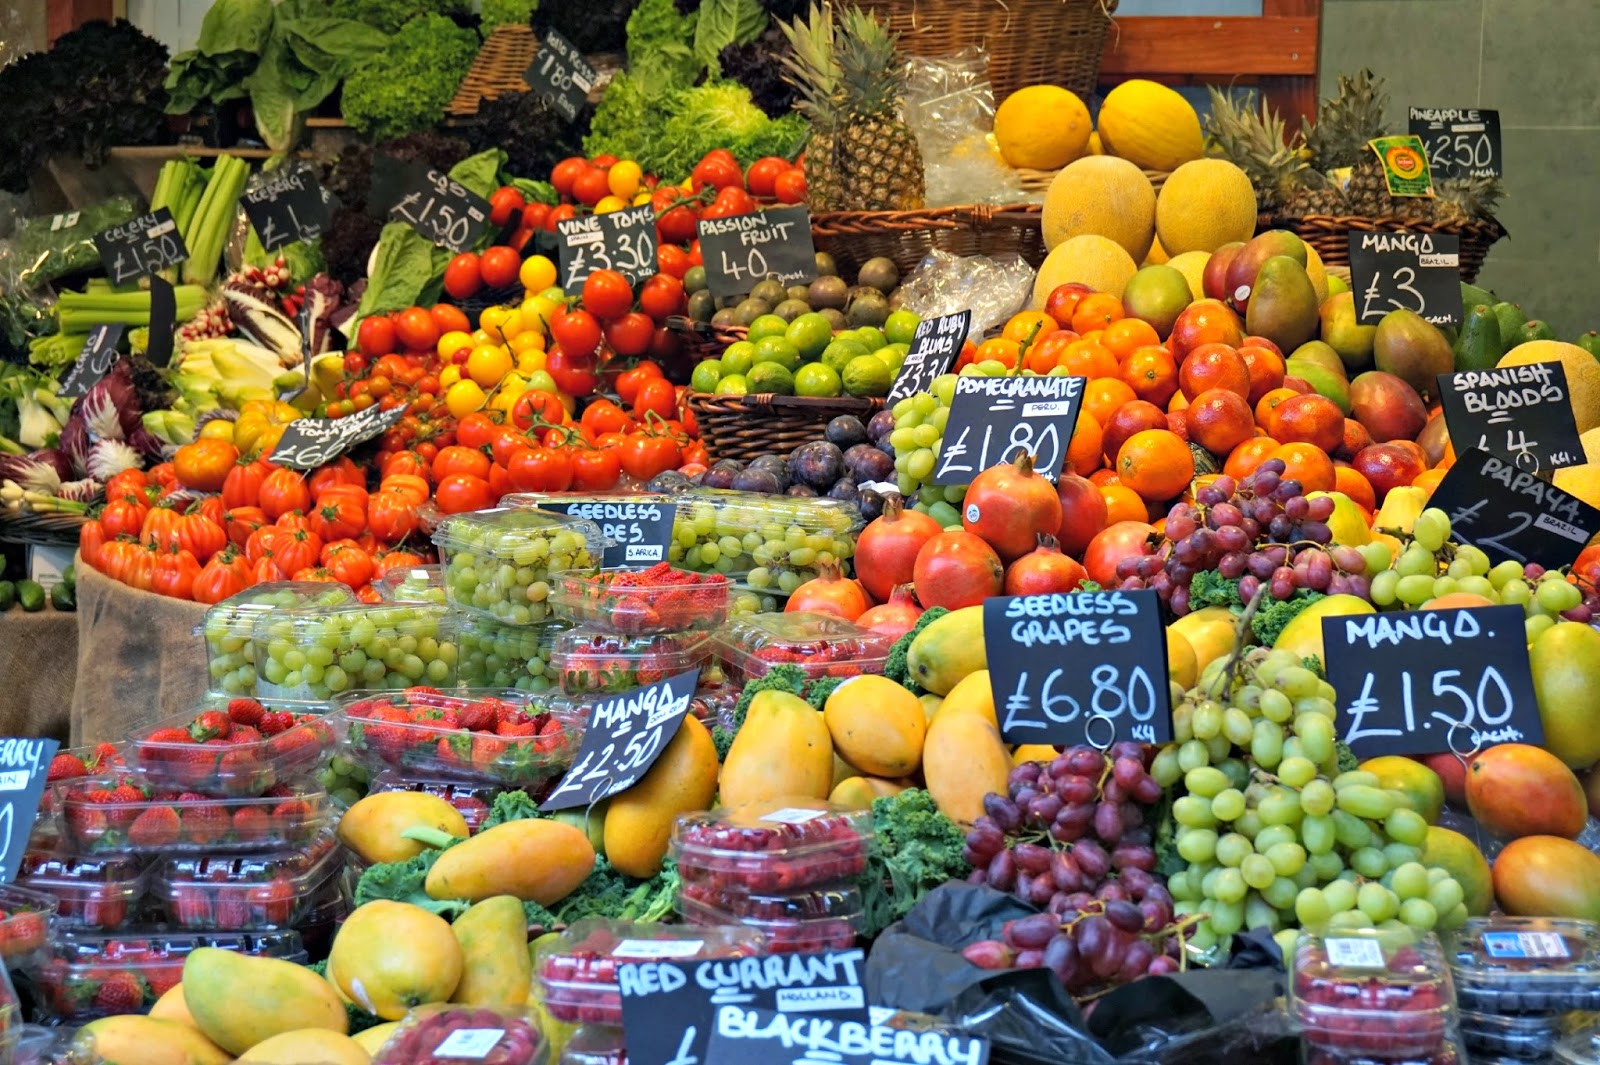 Borough Market Fruit